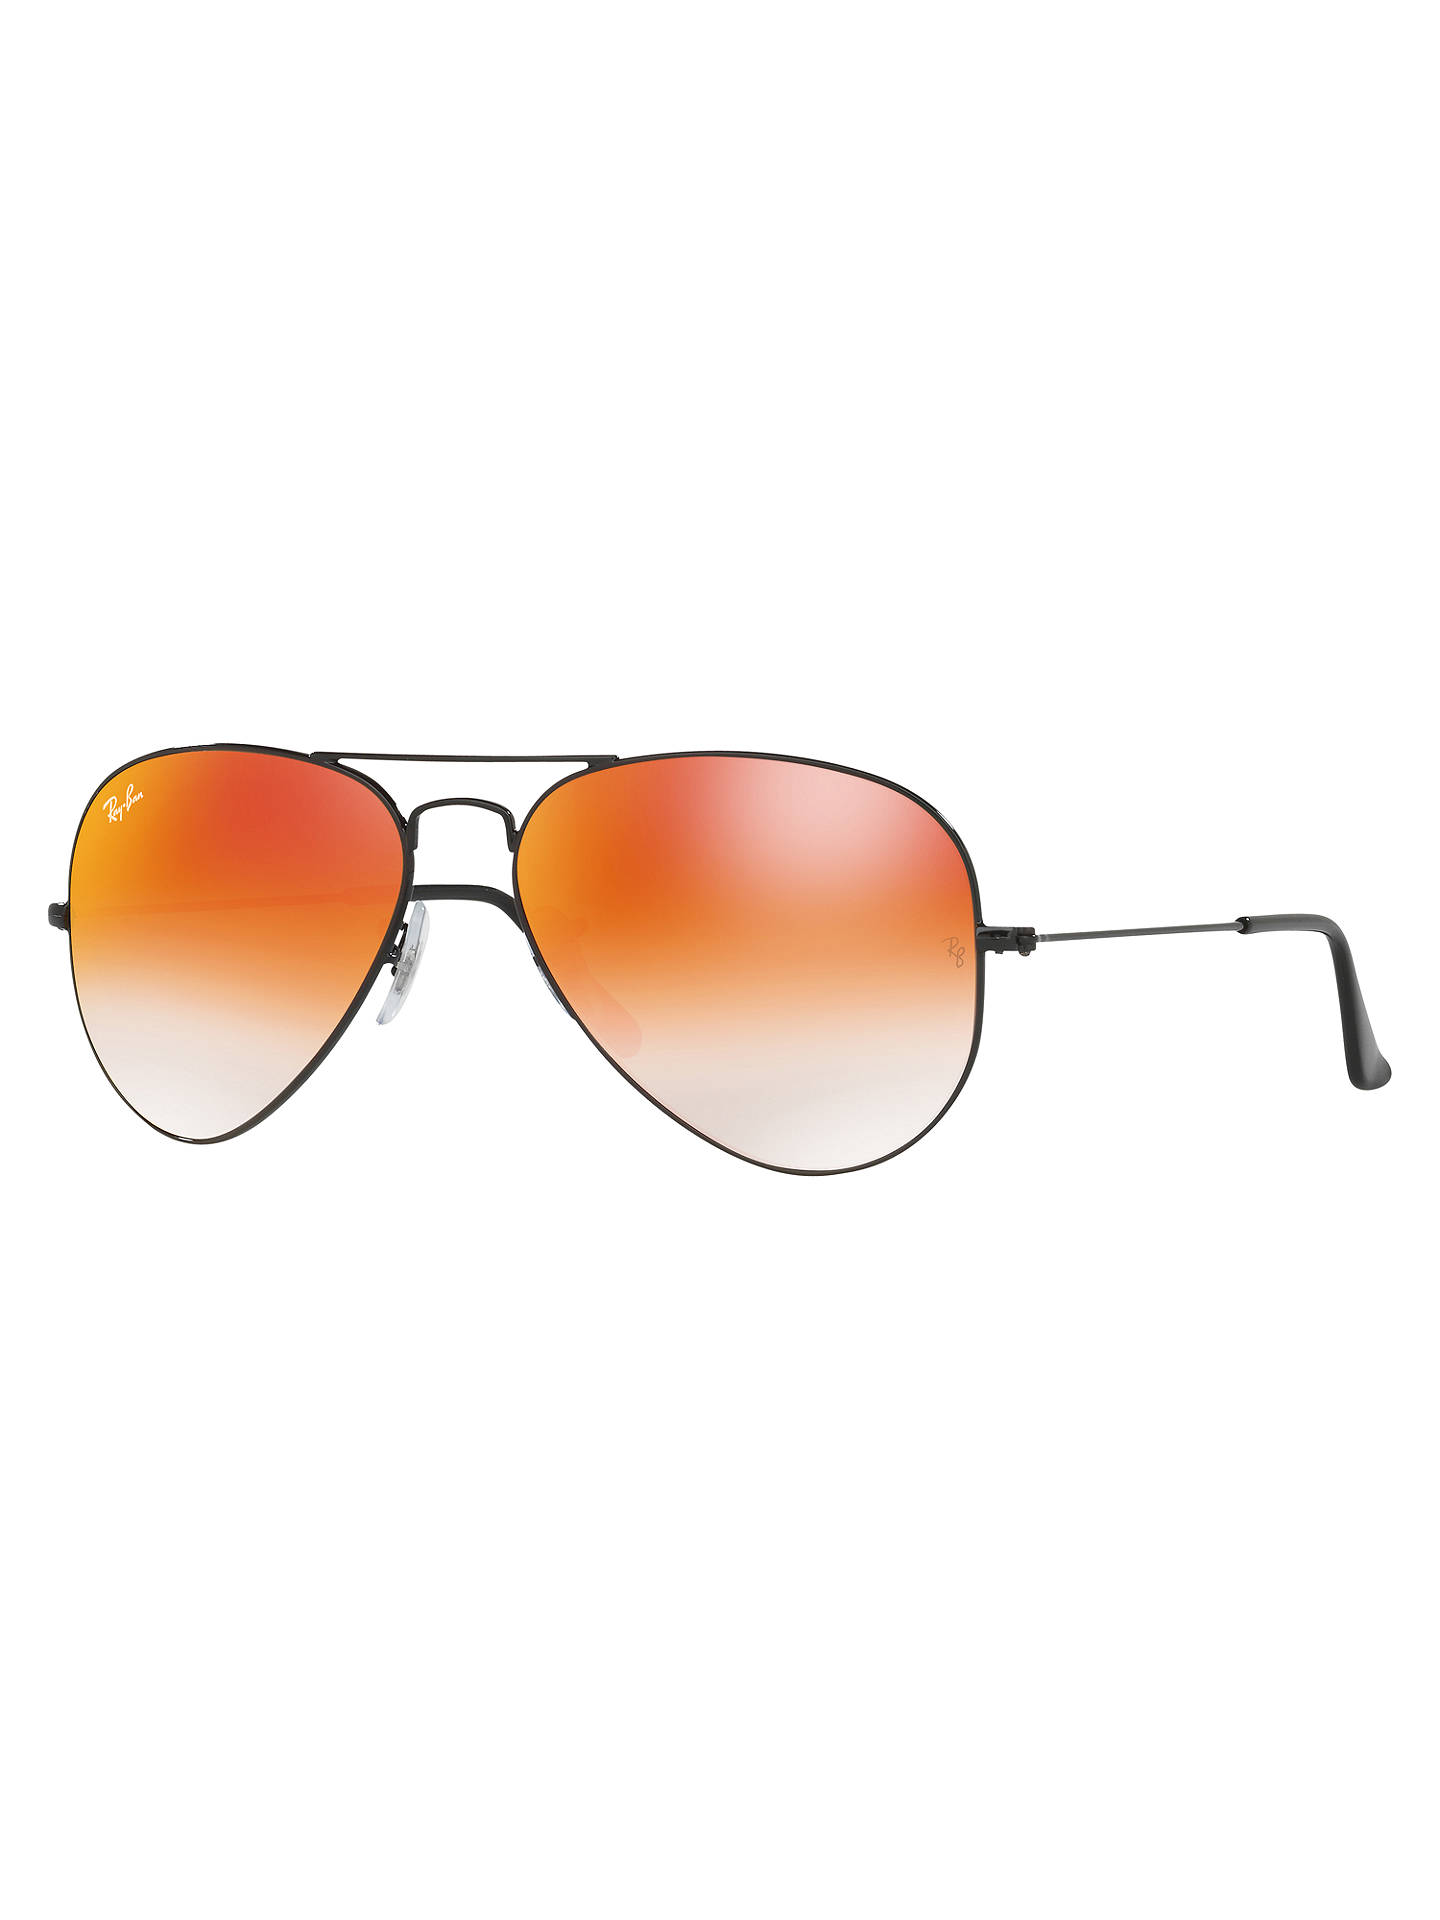 9b78dab07 Buy Ray-Ban RB3025 Aviator Flash Lenses Sunglasses, Black/Mirror Orange  Online at ...